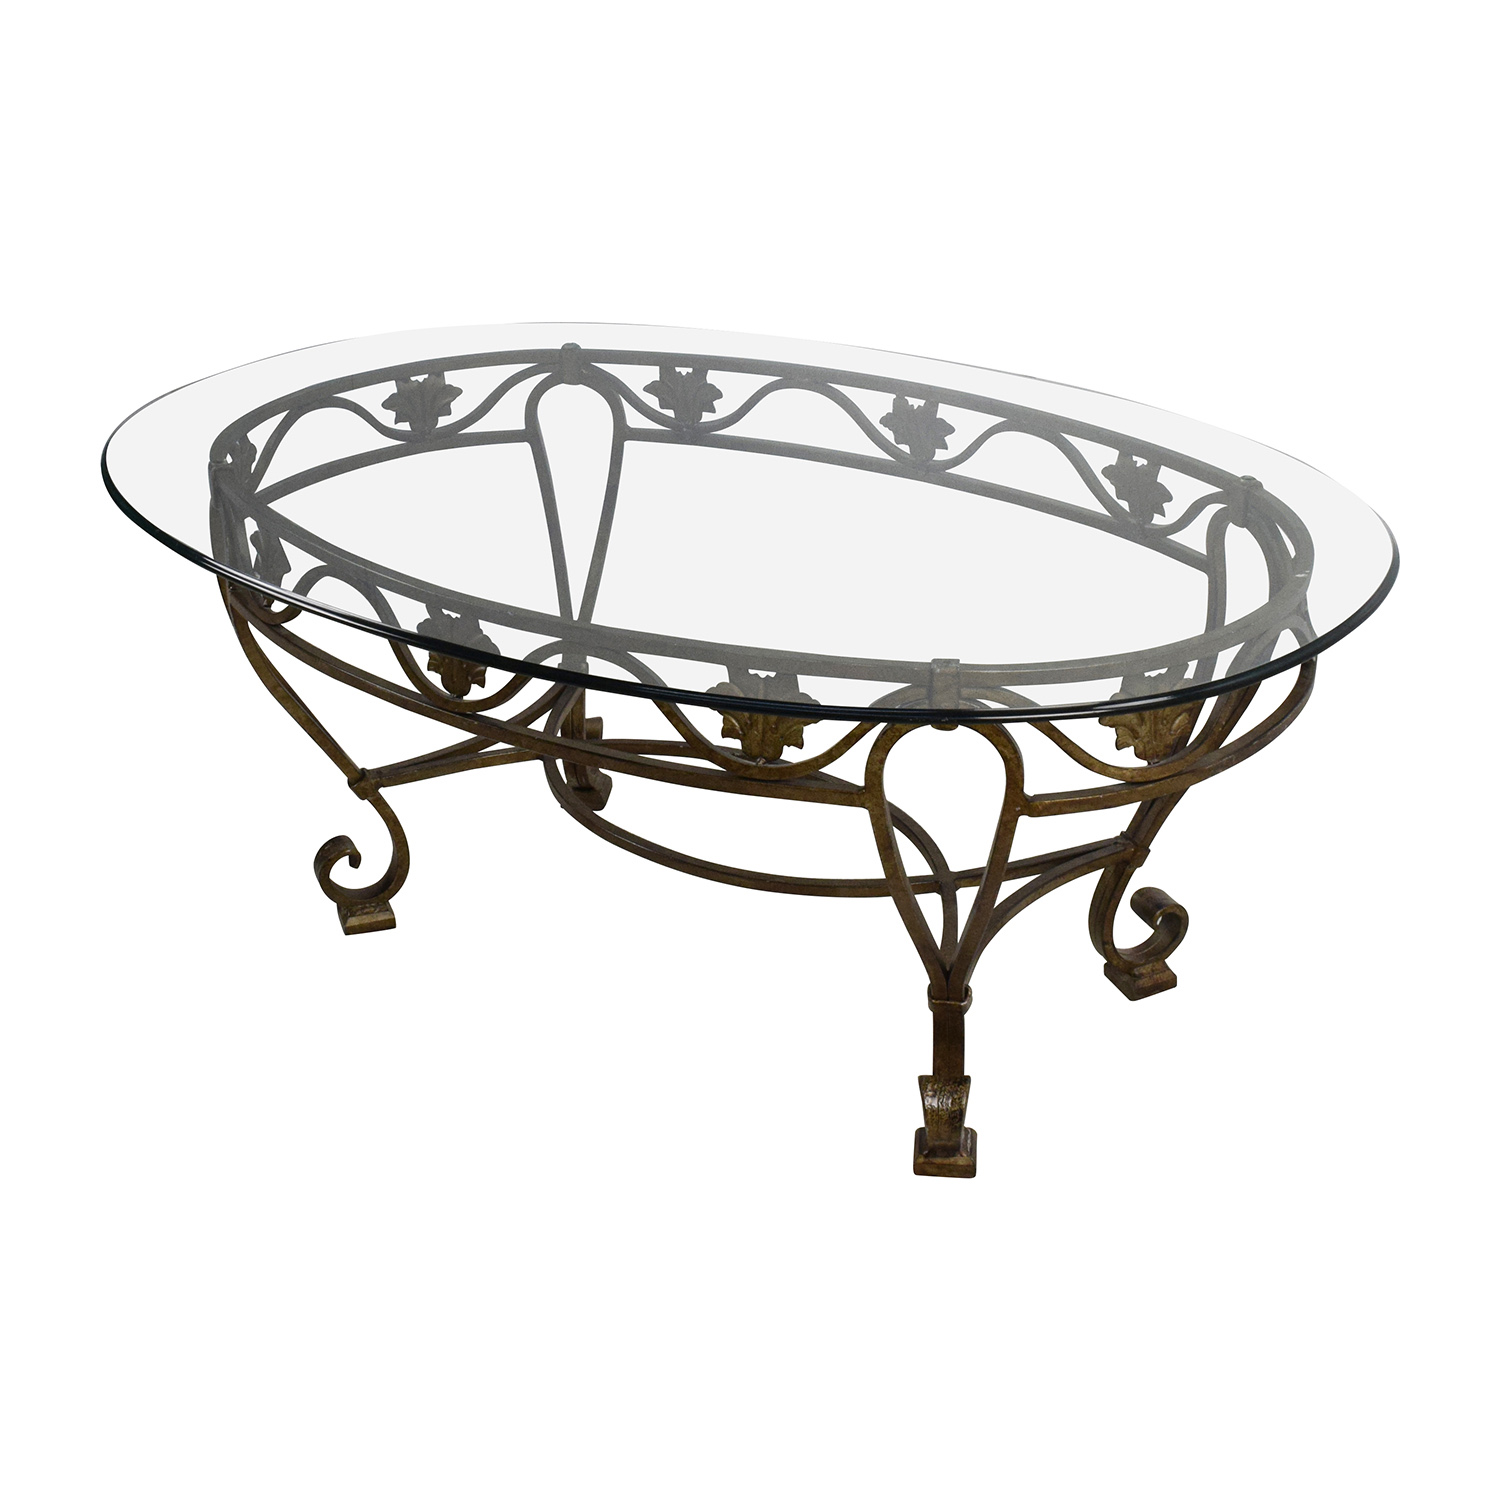 90% OFF Iron Cast Glass Top Antique Coffee Table Tables